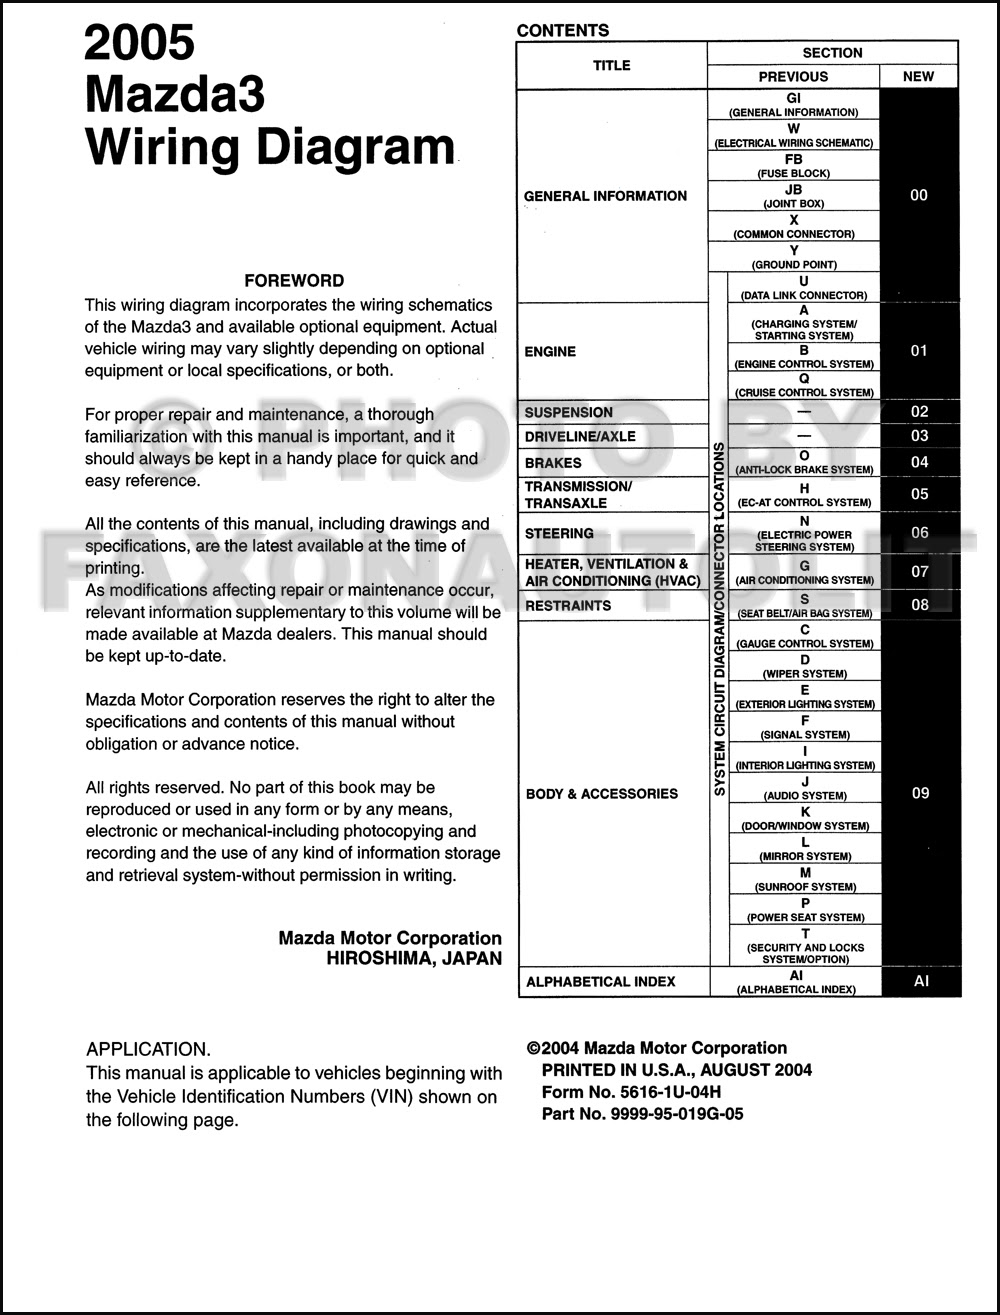 31 Mazda 3 Wiring Diagram